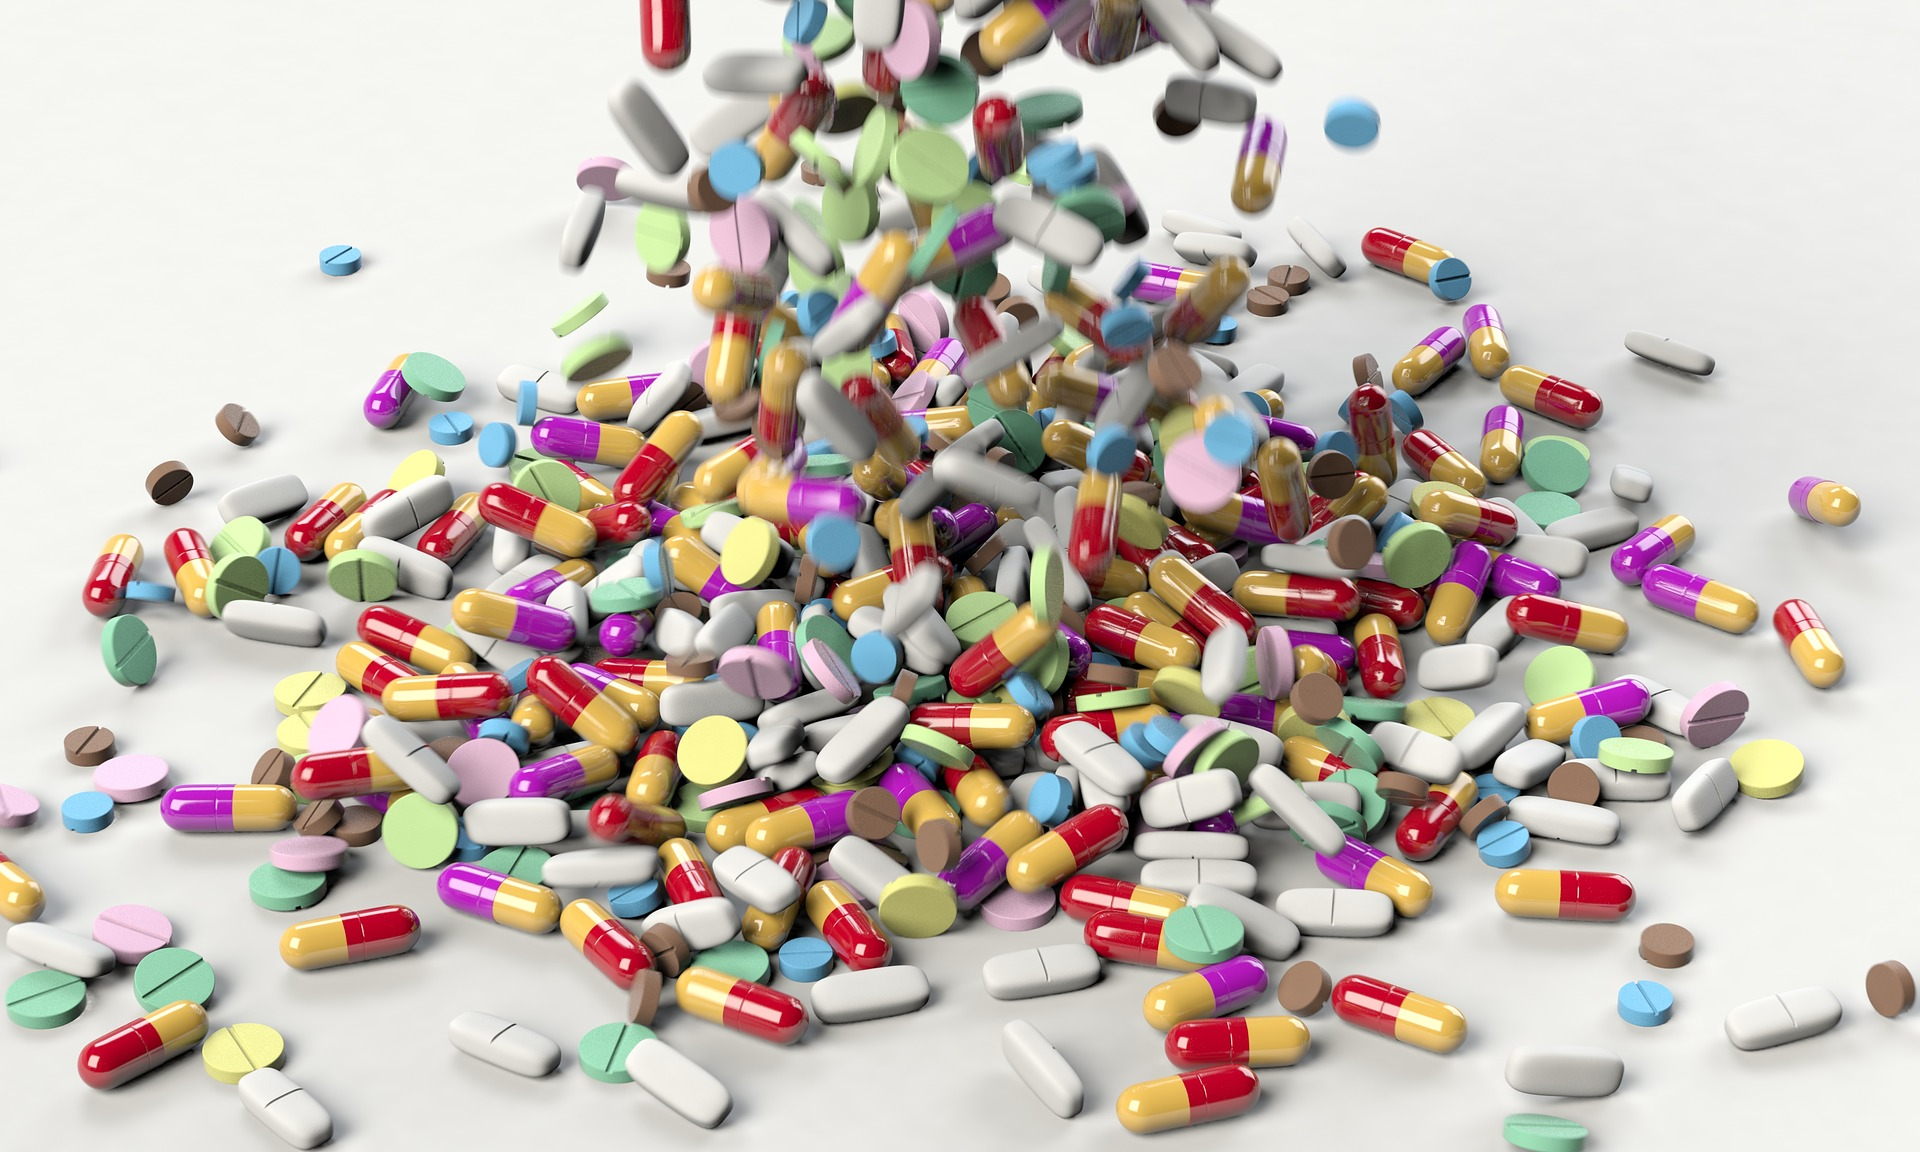 DEA Data: U.S. Saturated with 76 Billion Opioid Pills Over Nearly a Decade's Time